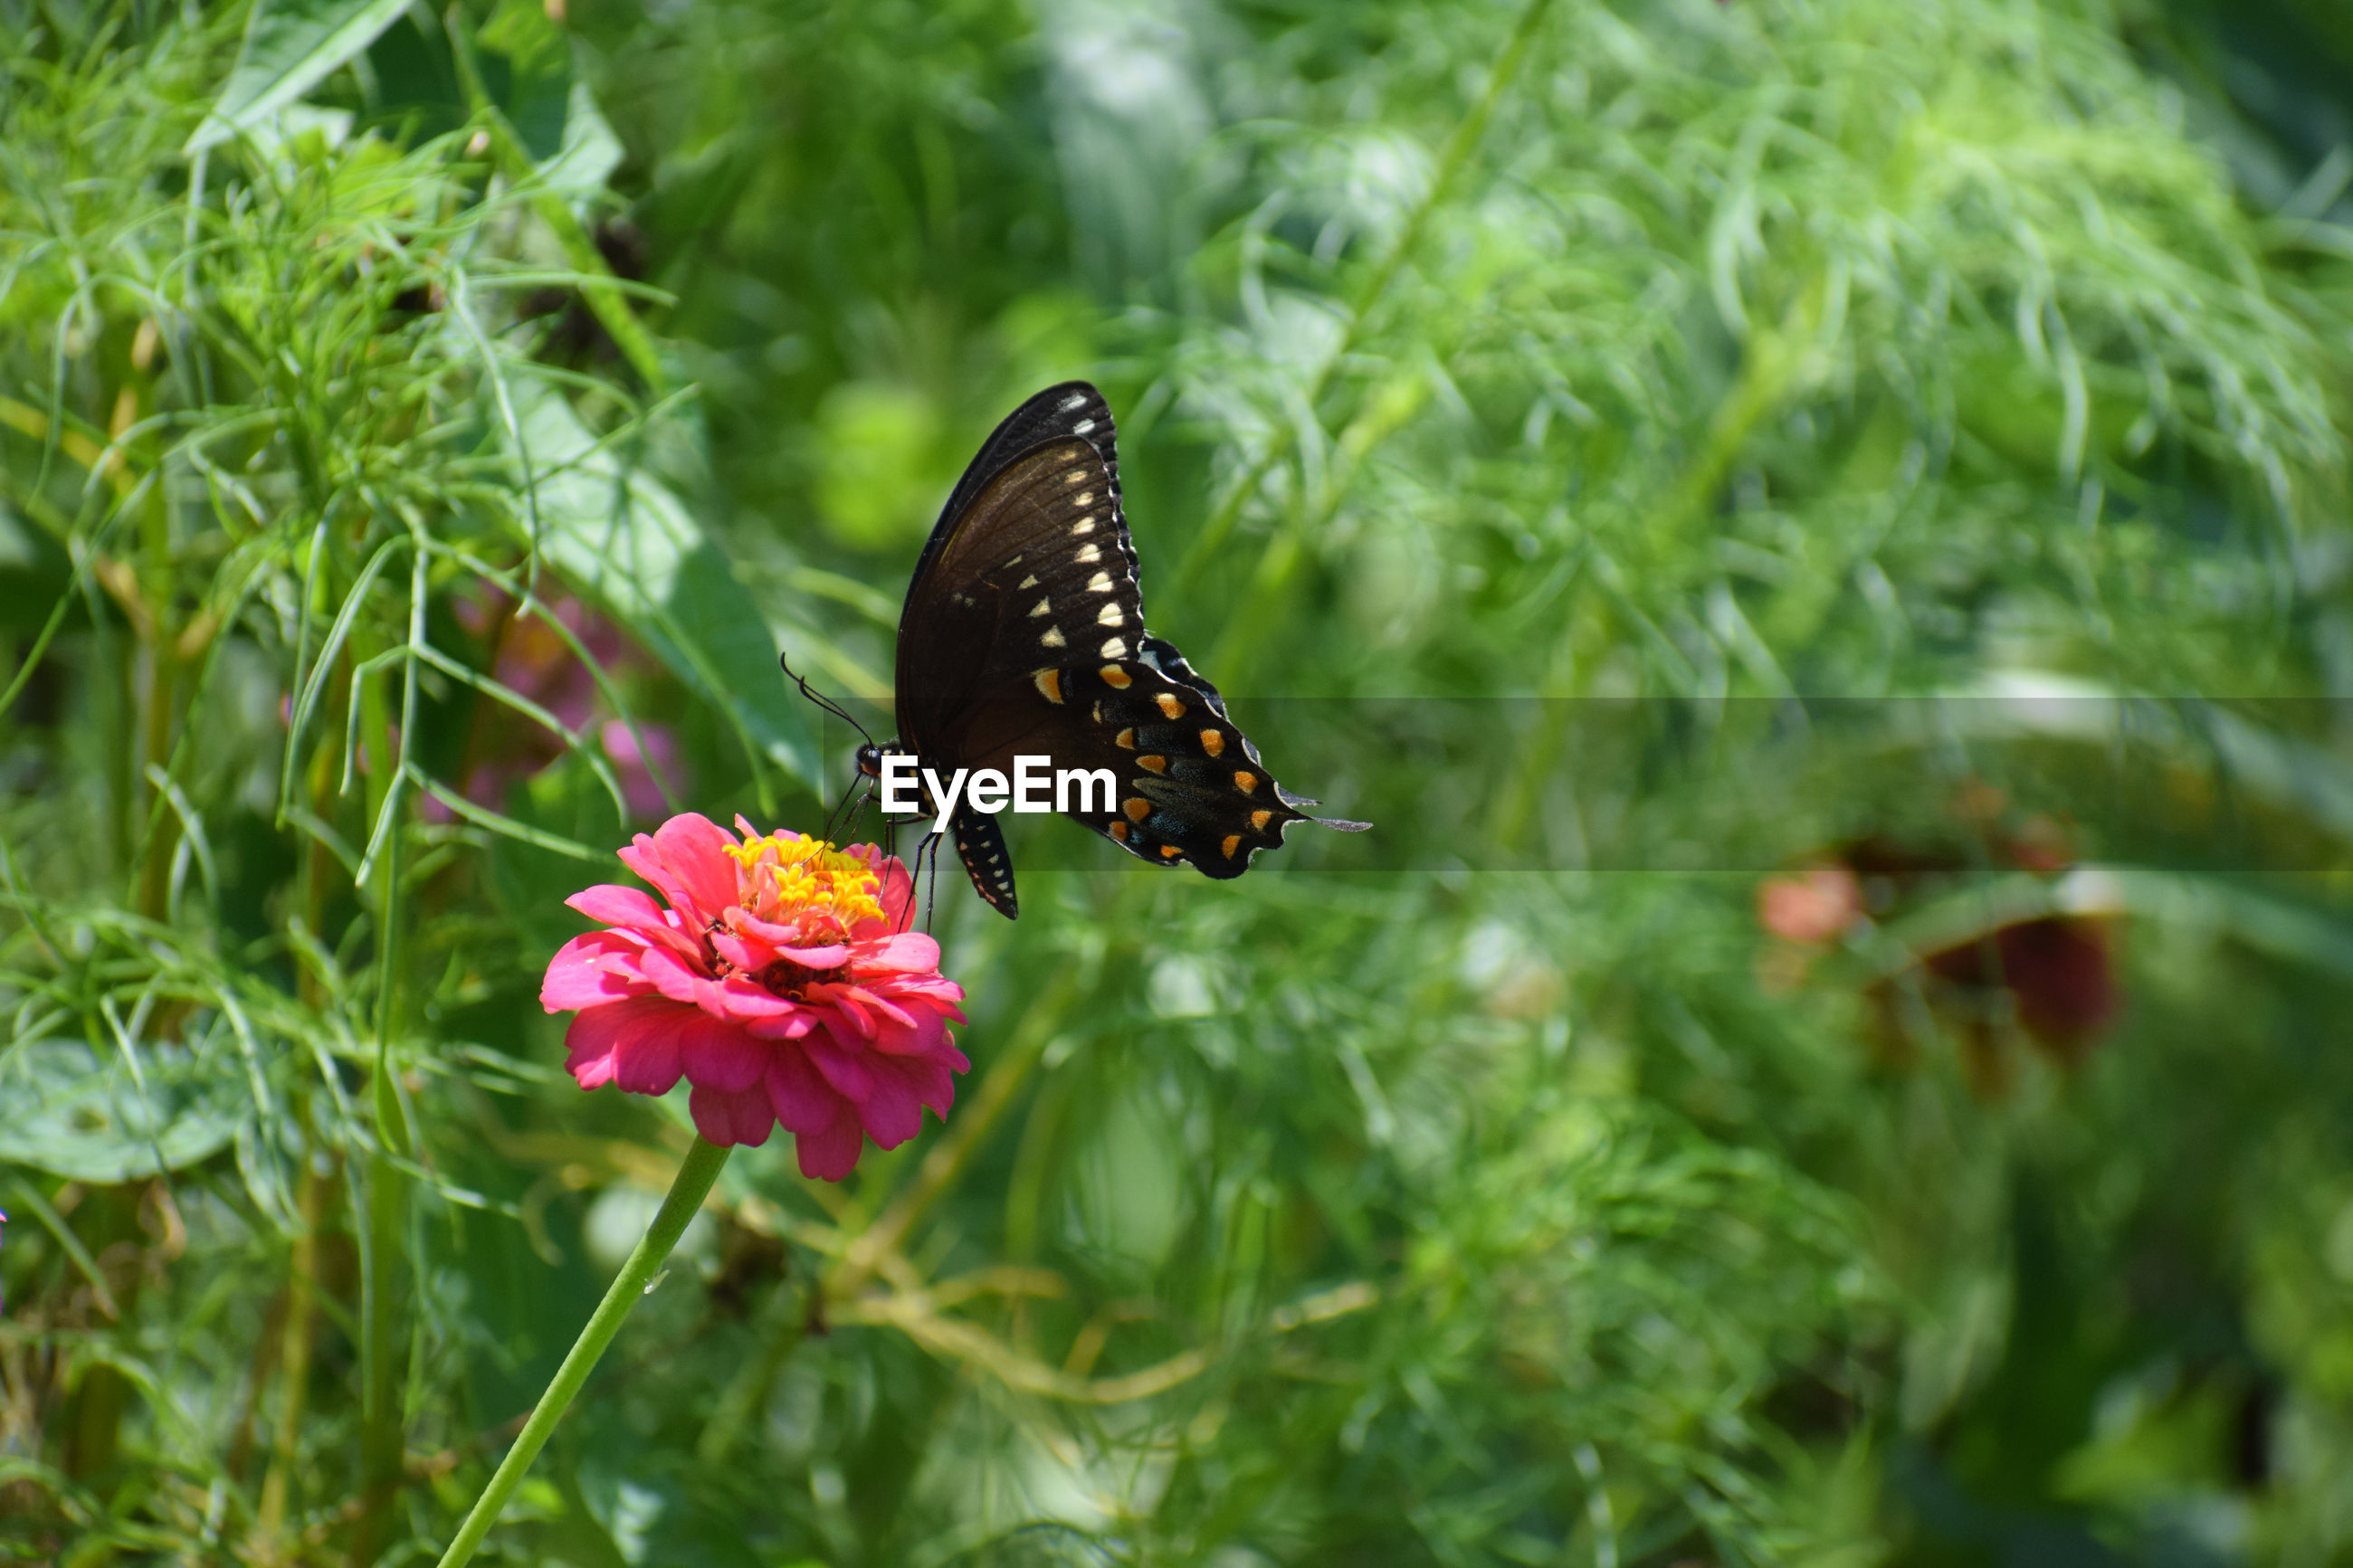 Butterfly pollinating on flower